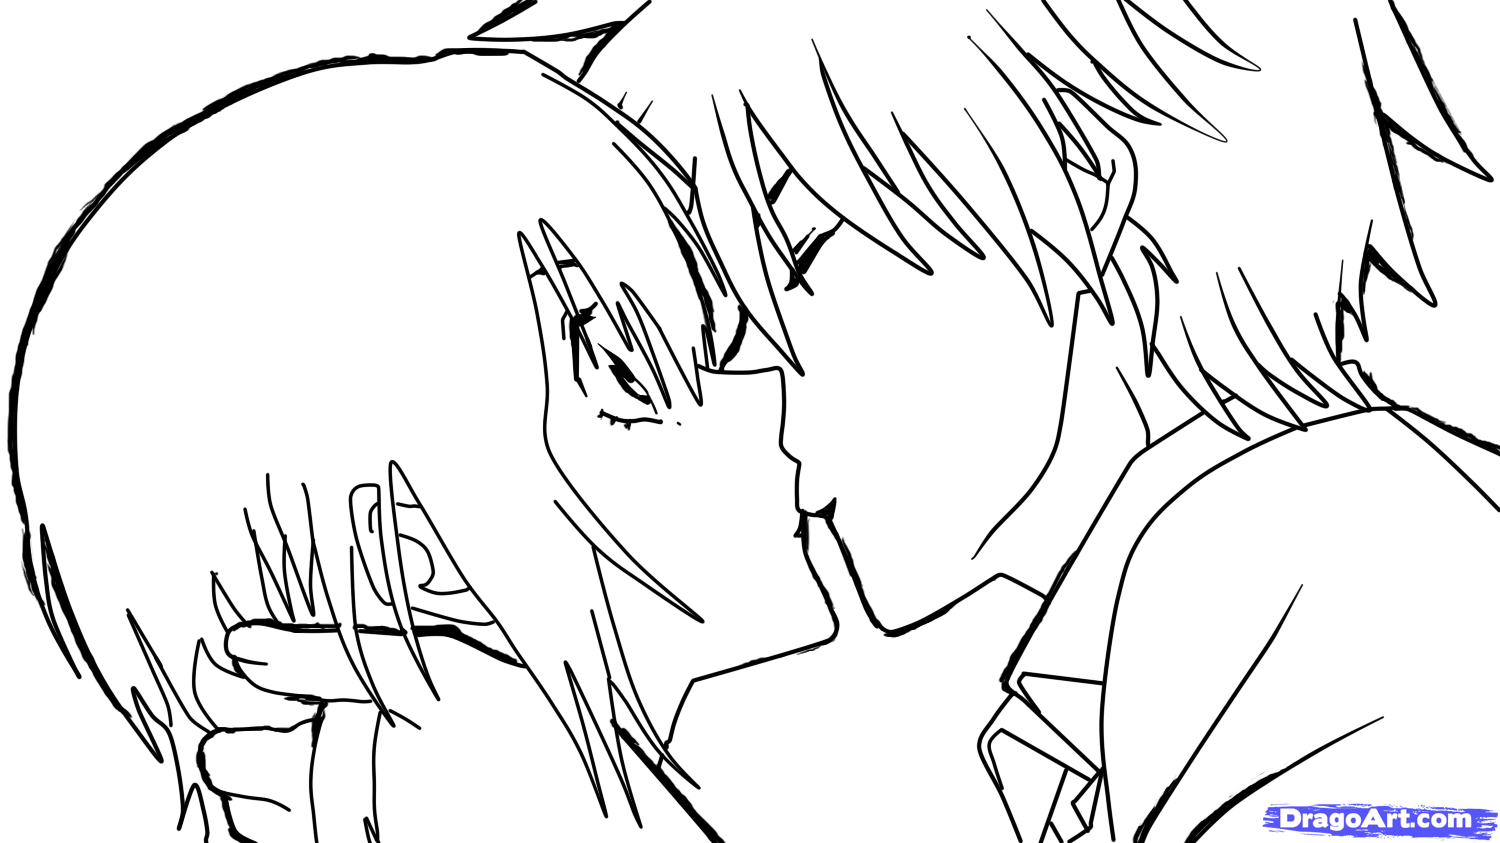 1500x843 Anime Drawings Of A Girl Kissing A Boy Colour Sketch The Girl Kiss